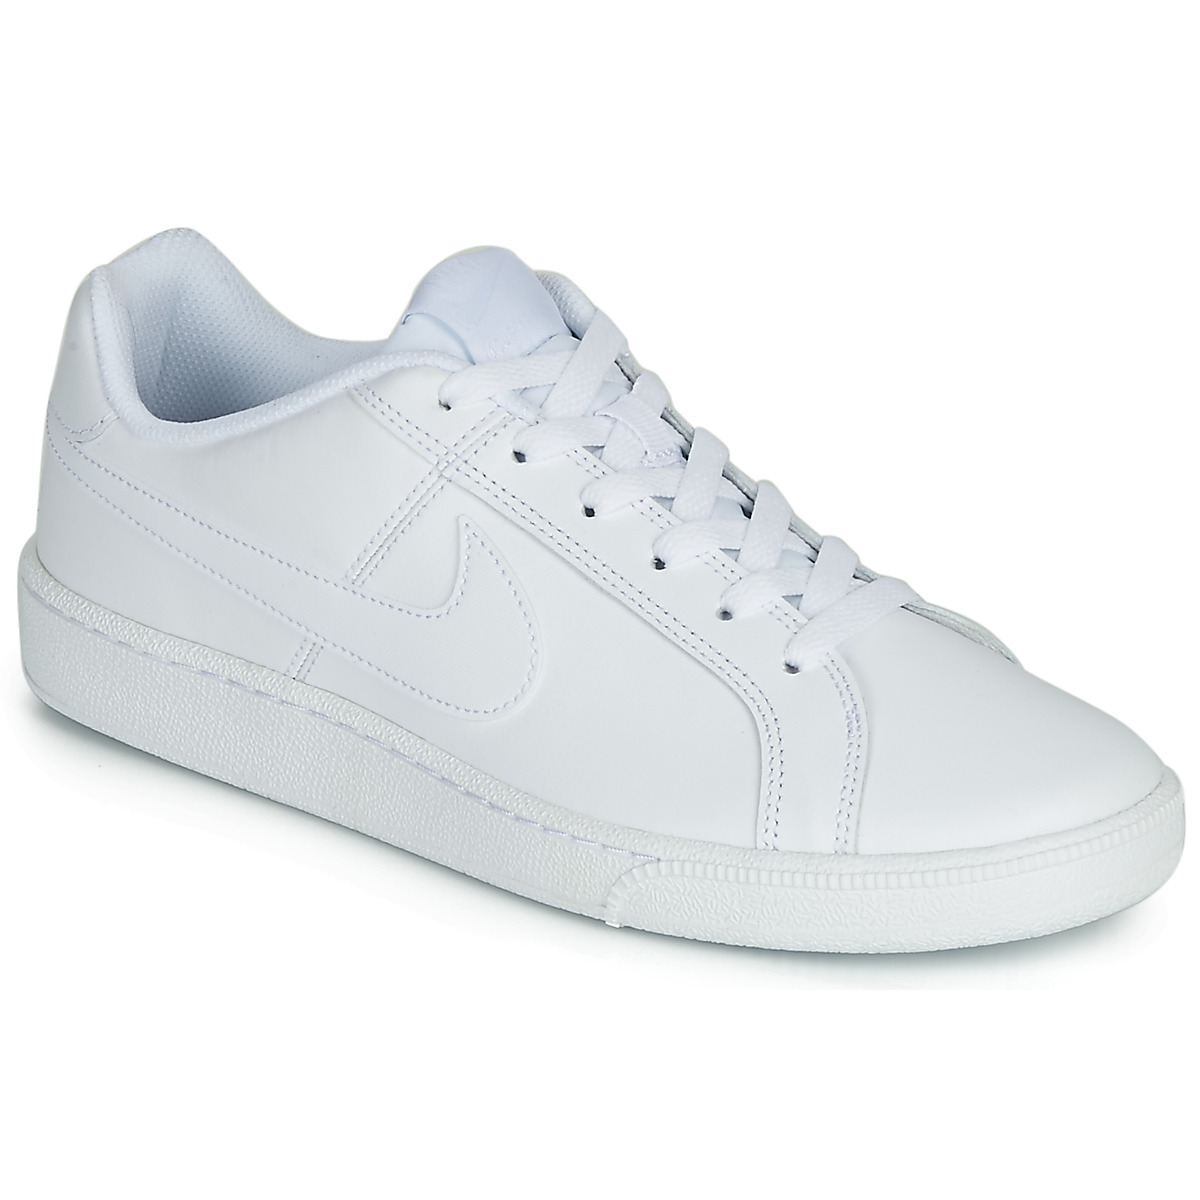 Nike COURT ROYALE White - Fast delivery